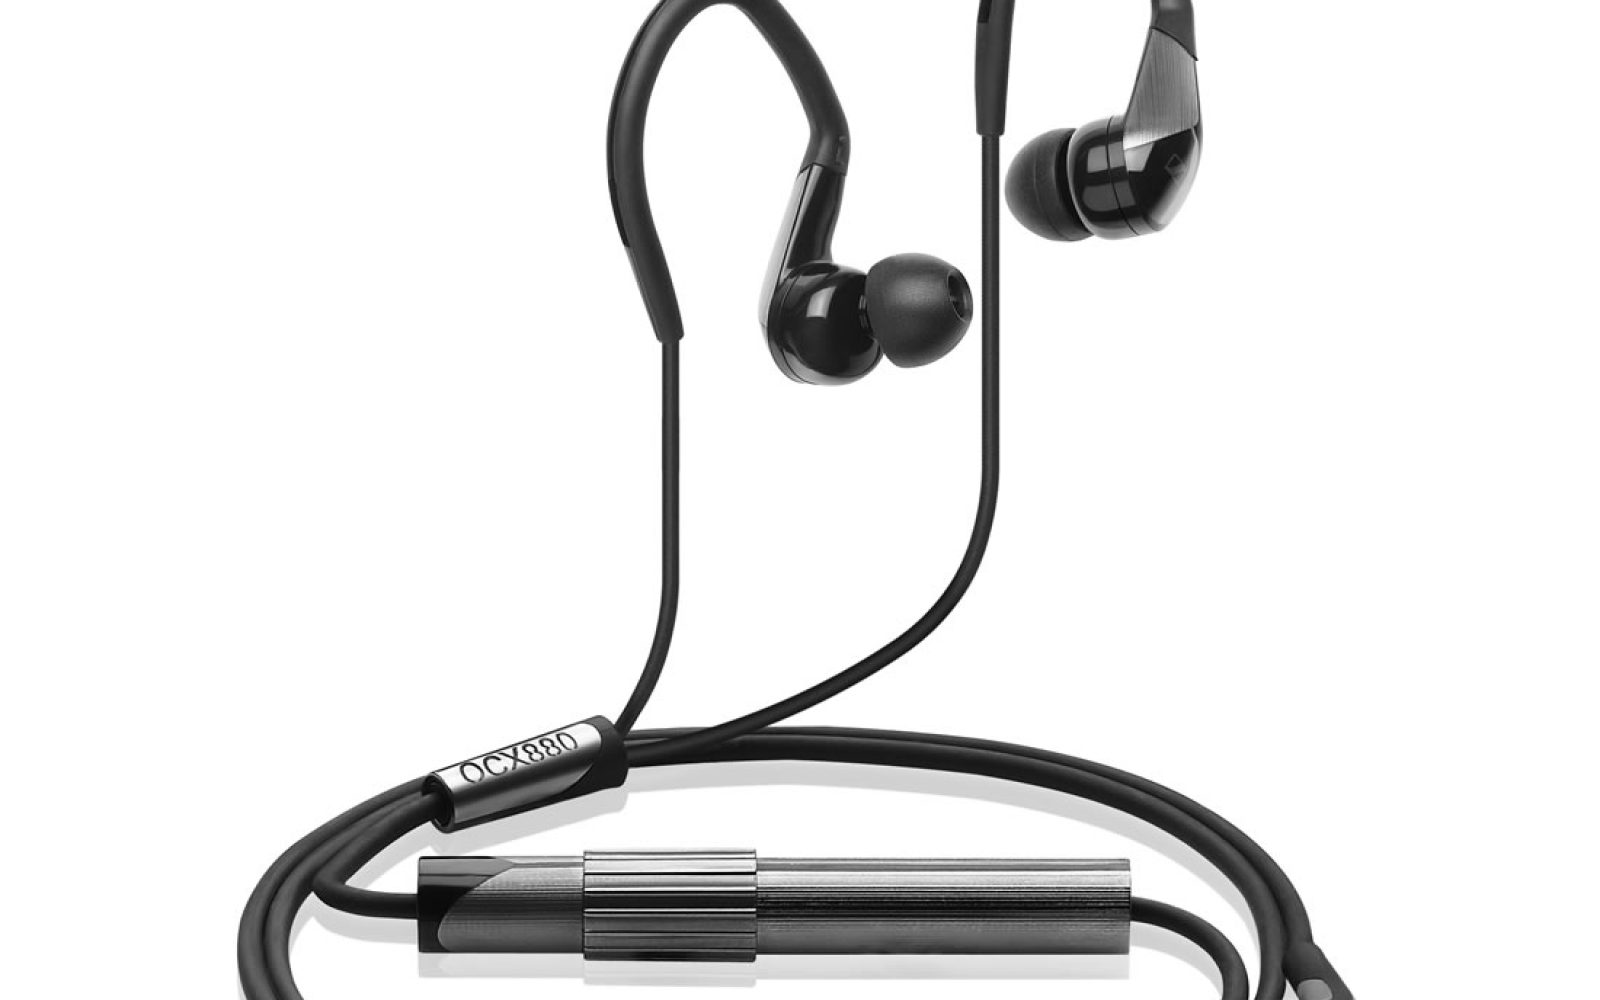 2013 page 67 9to5toys sennheiser ocx 880 black ear hook headphones 57 up to 110 off fandeluxe Images